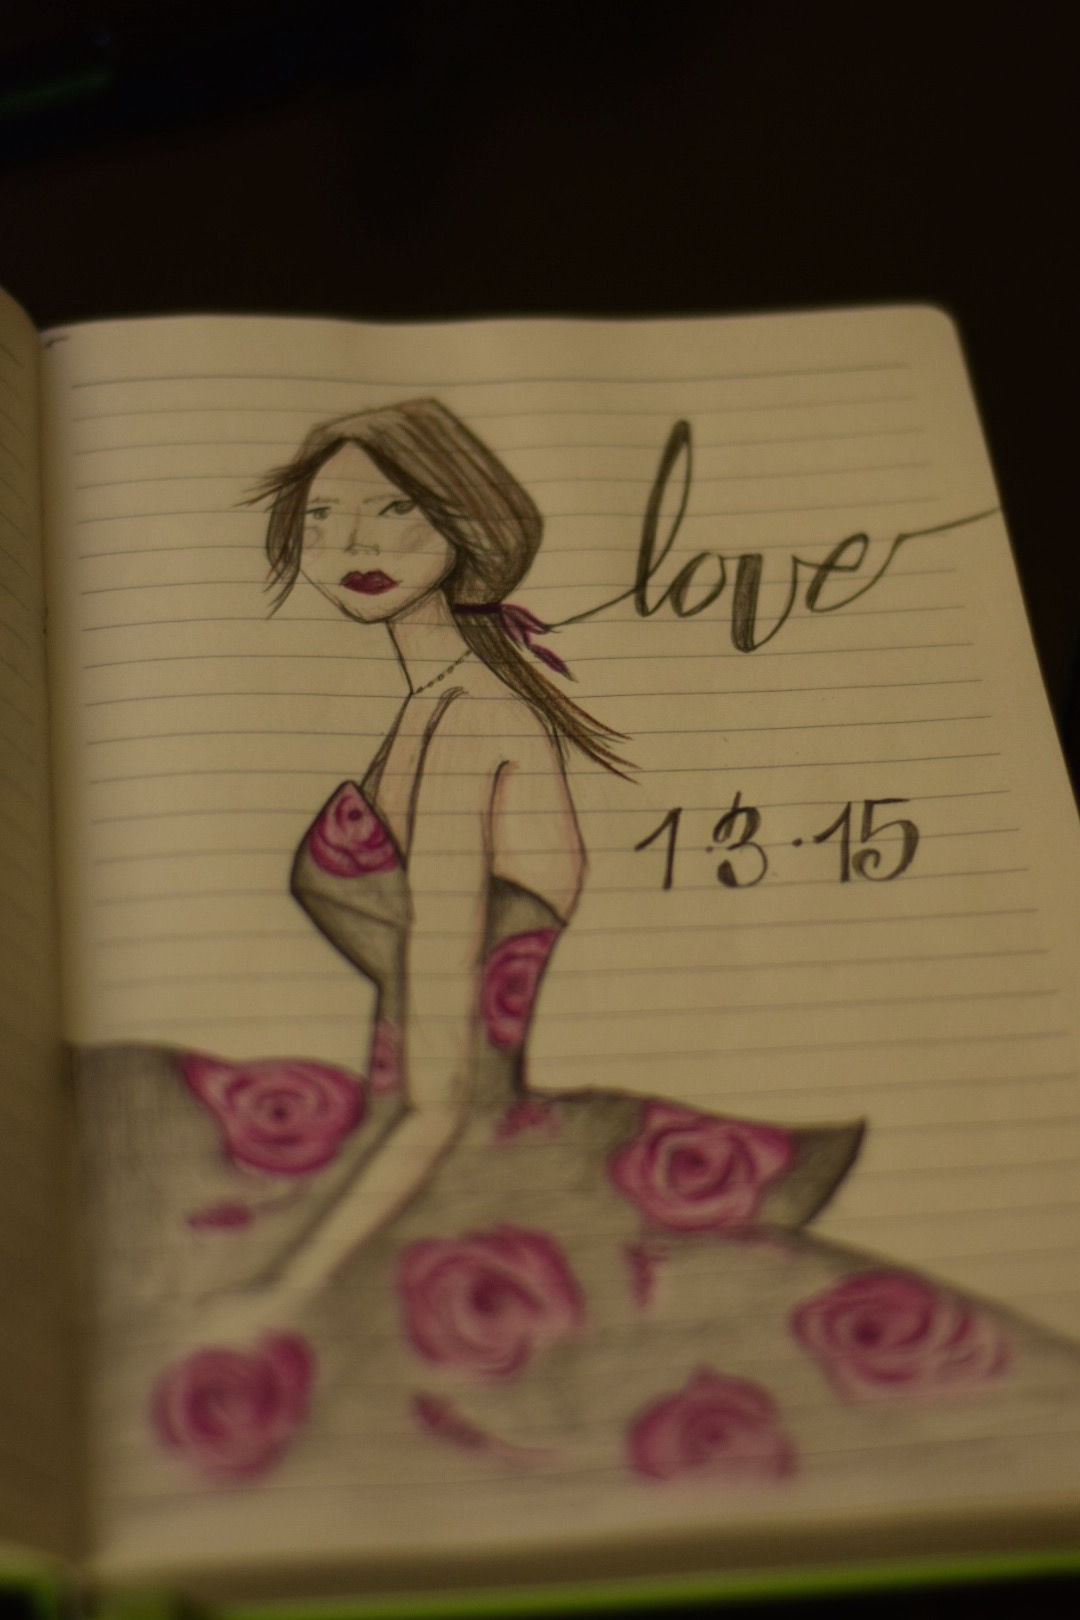 Love sketch by Maria Elisa Maxit, 1.3.15